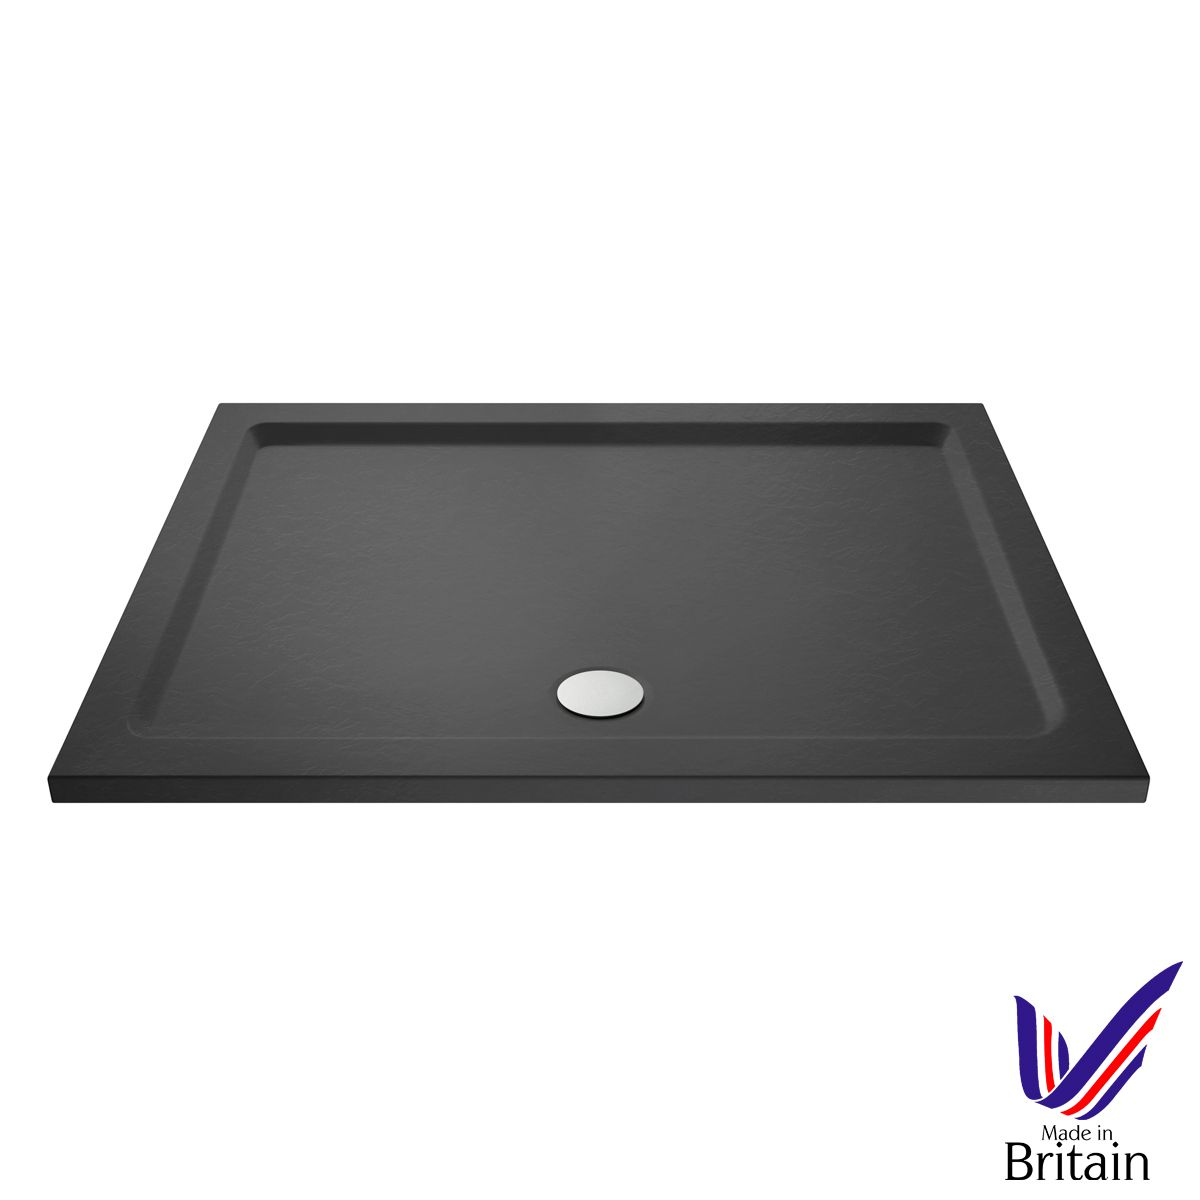 1600 x 700 Shower Tray Slate Grey Rectangular Low Profile by Pearlstone